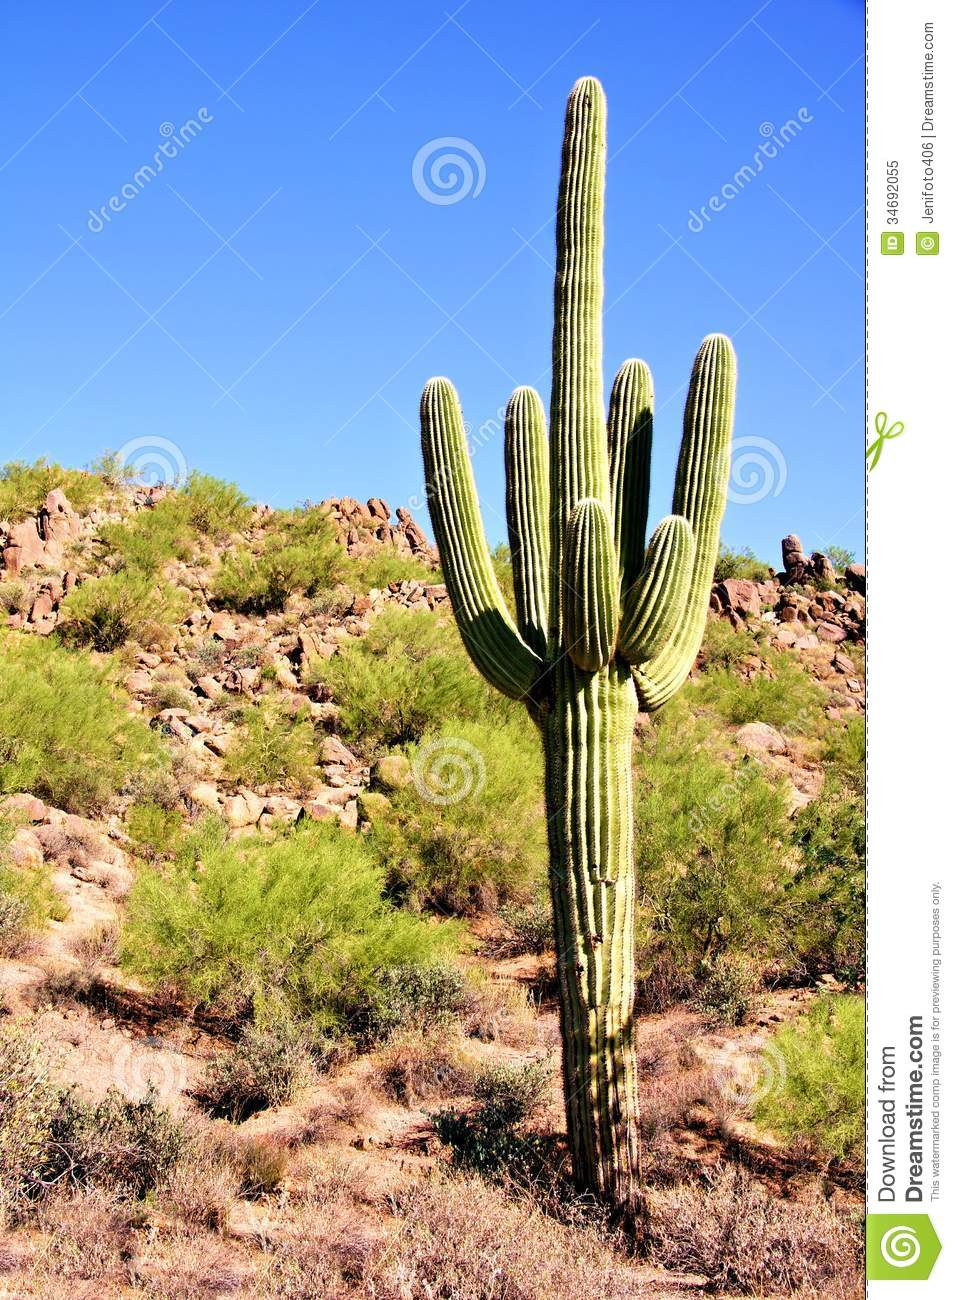 Giant saguaro royalty free stock photo image 34692055 for Cactus imagenes